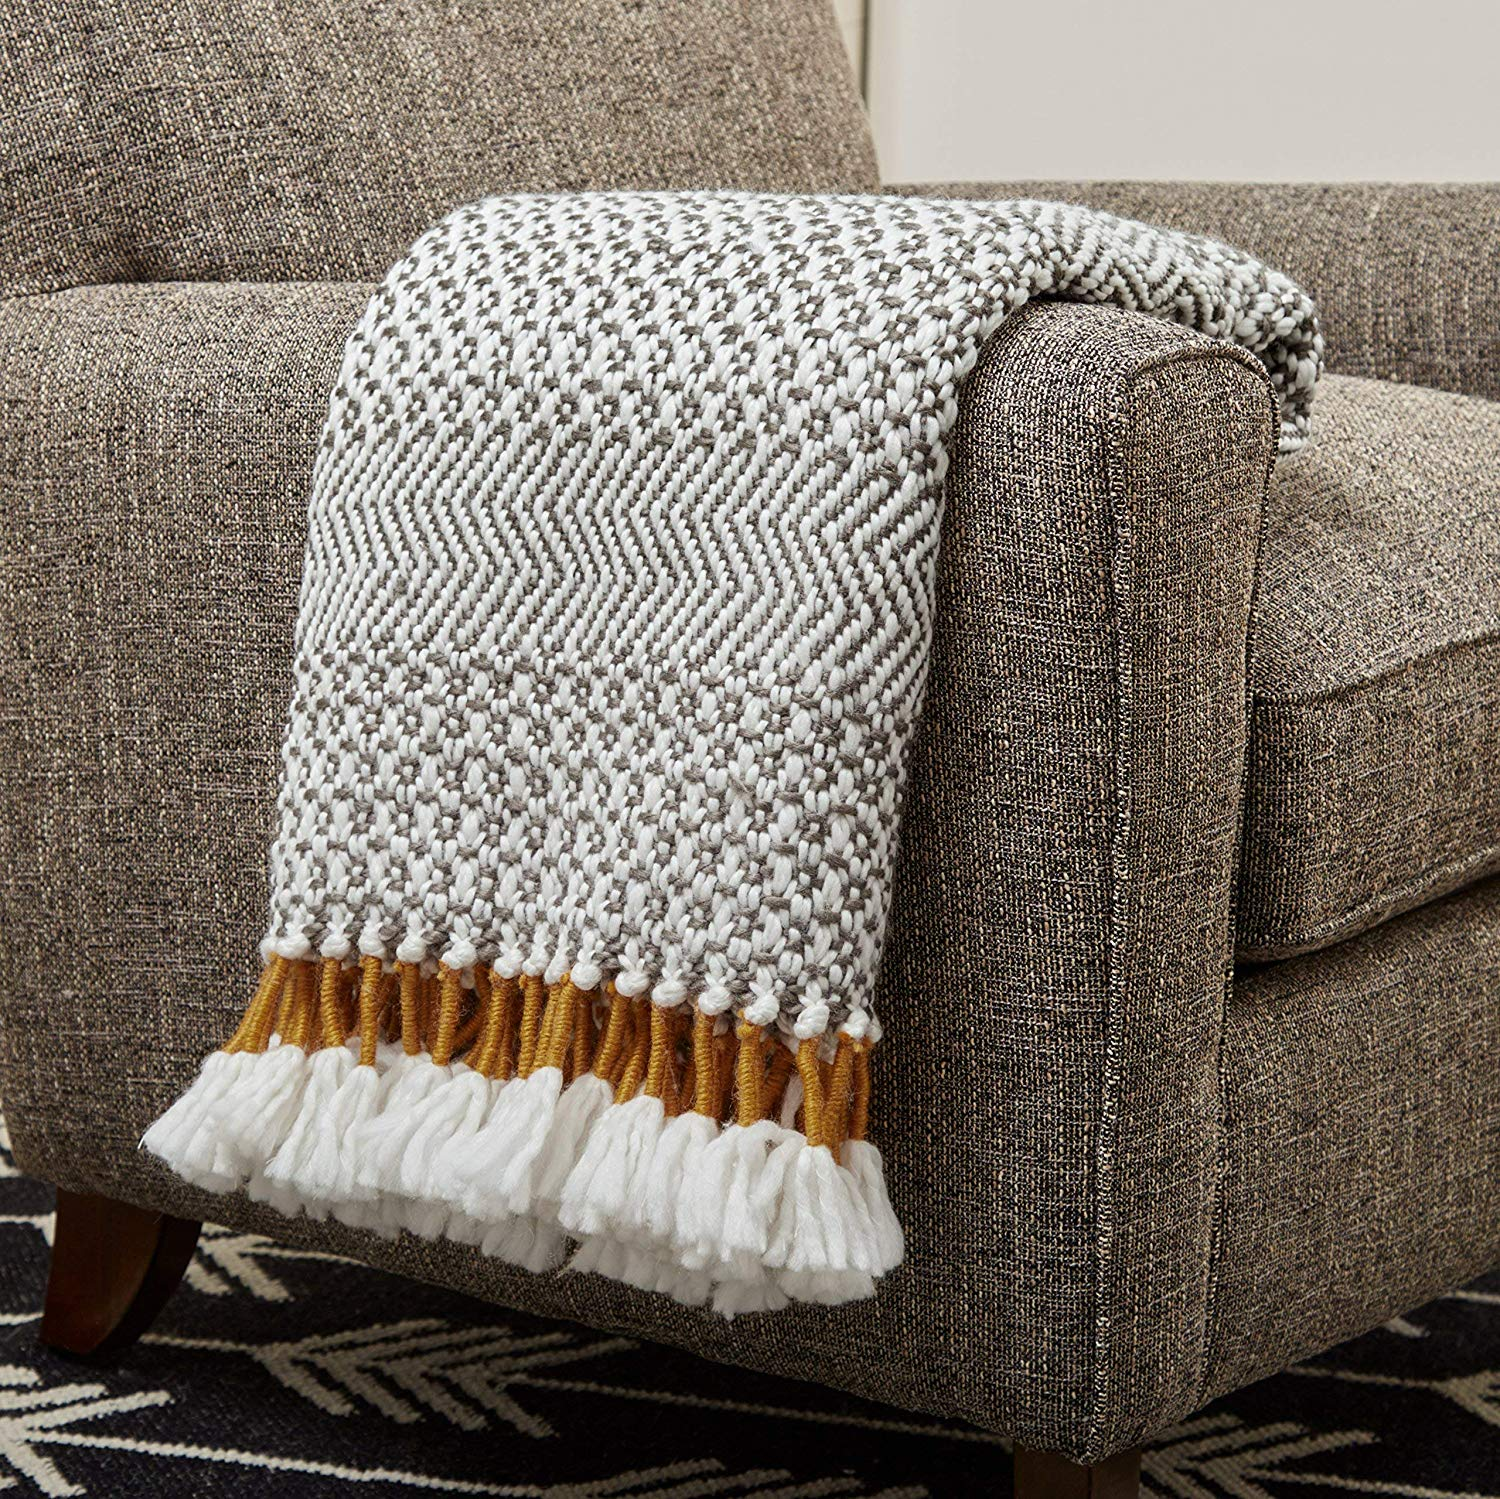 Hand woven  throw blanket  in shades of charcoal with mustard fringe.